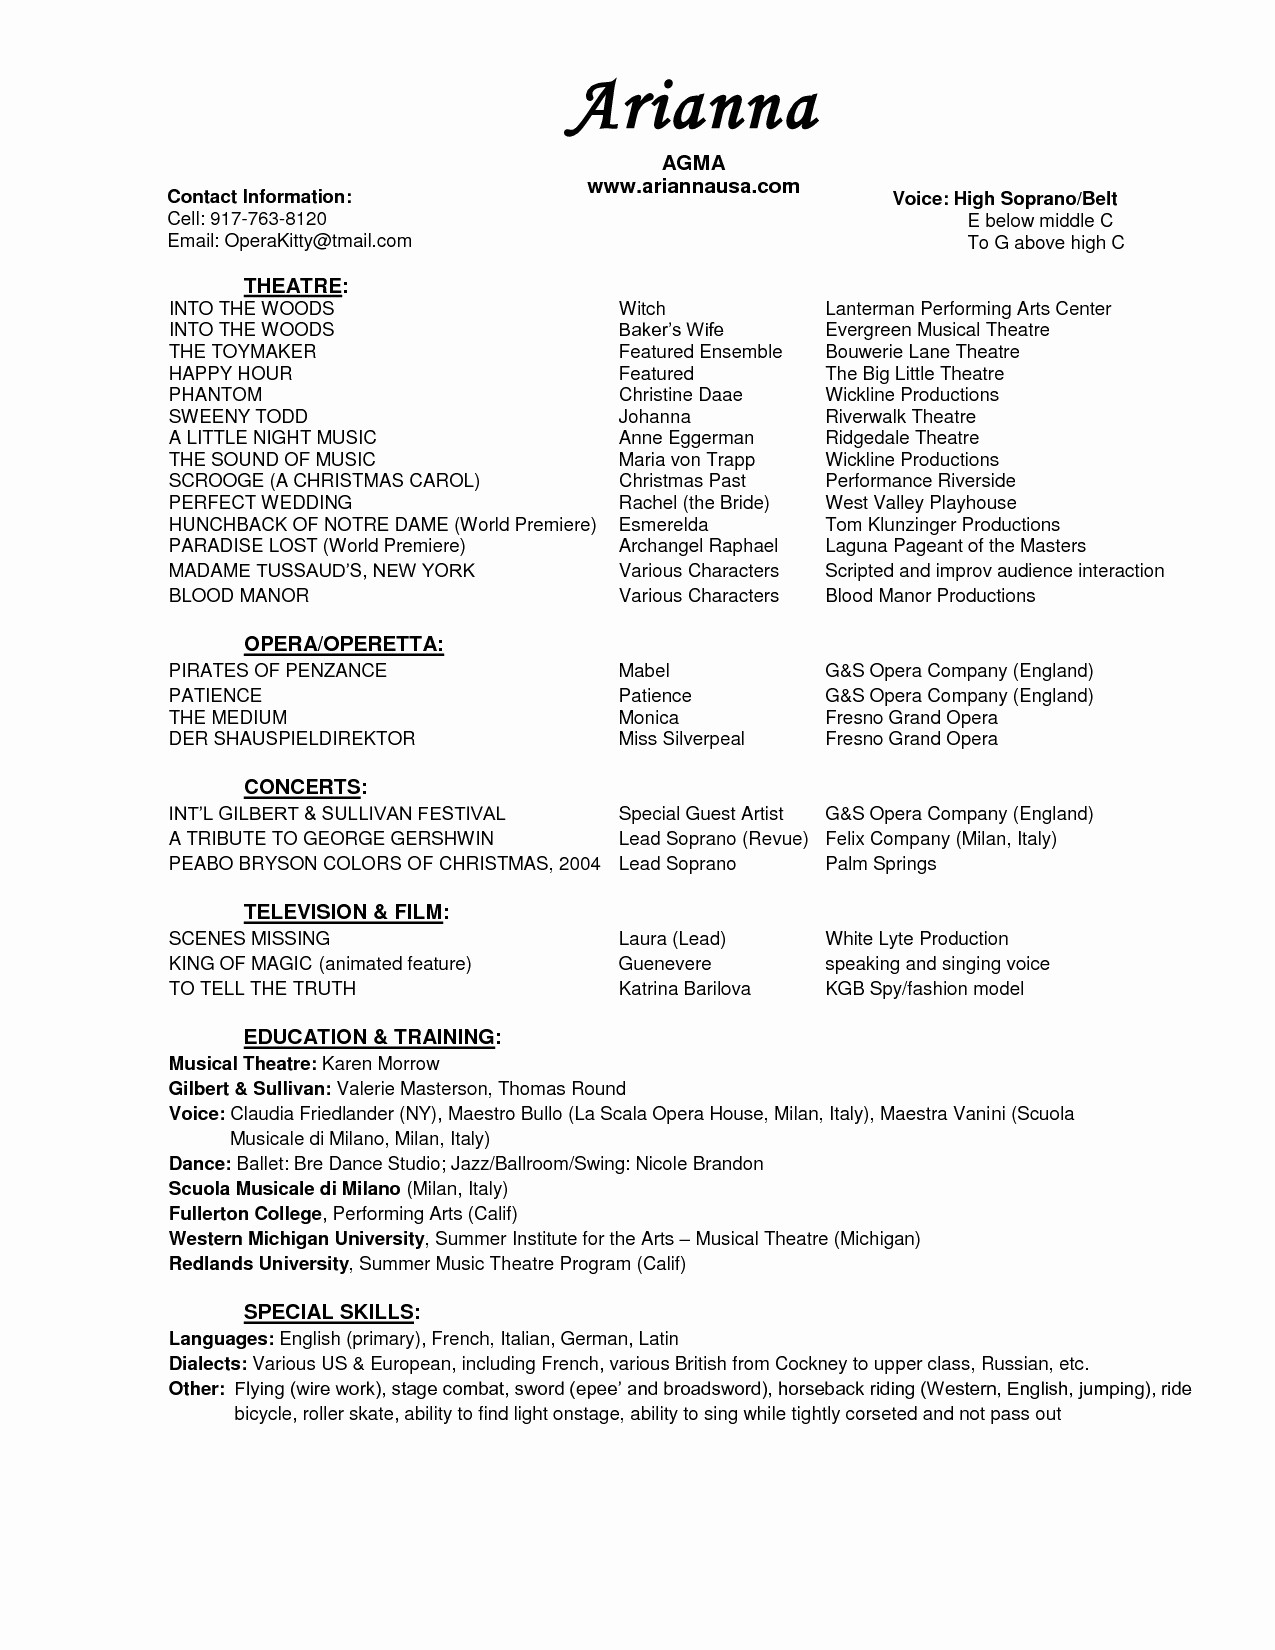 Dancer Resume Template - Musicians Resume Template Save Musical theatre Resume Template